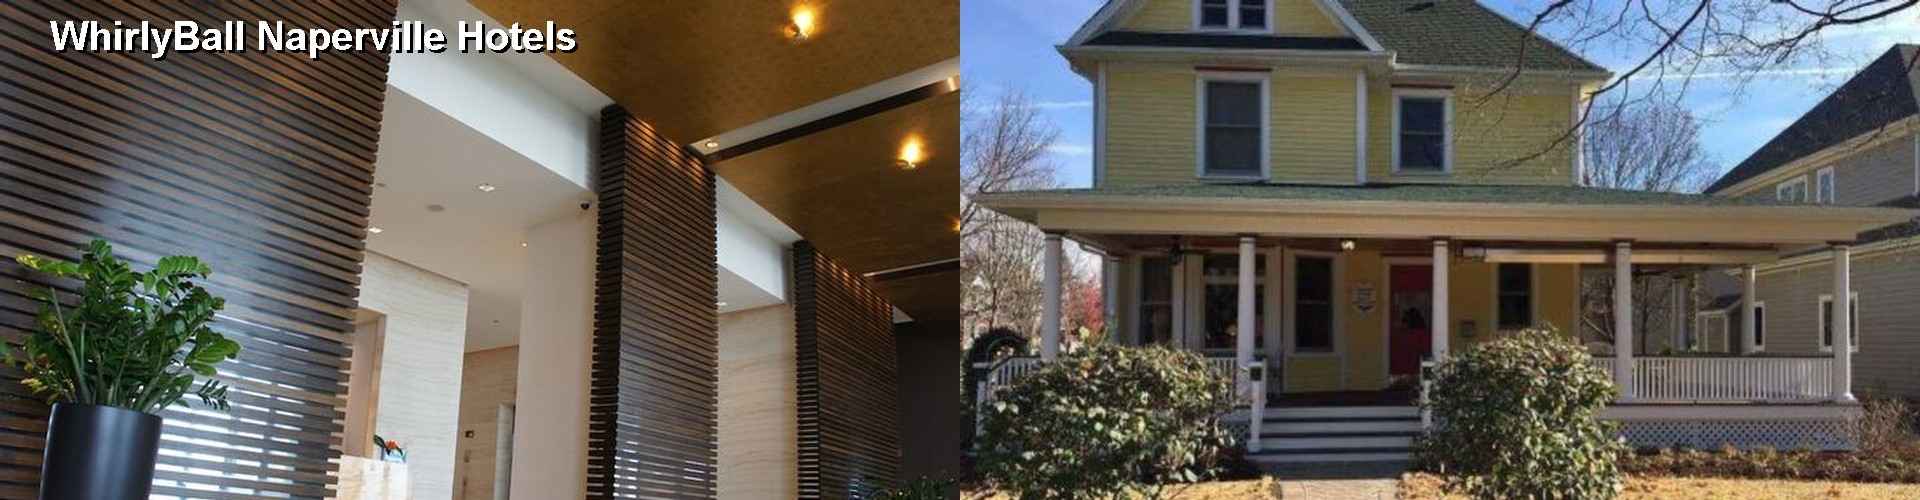 5 Best Hotels near WhirlyBall Naperville